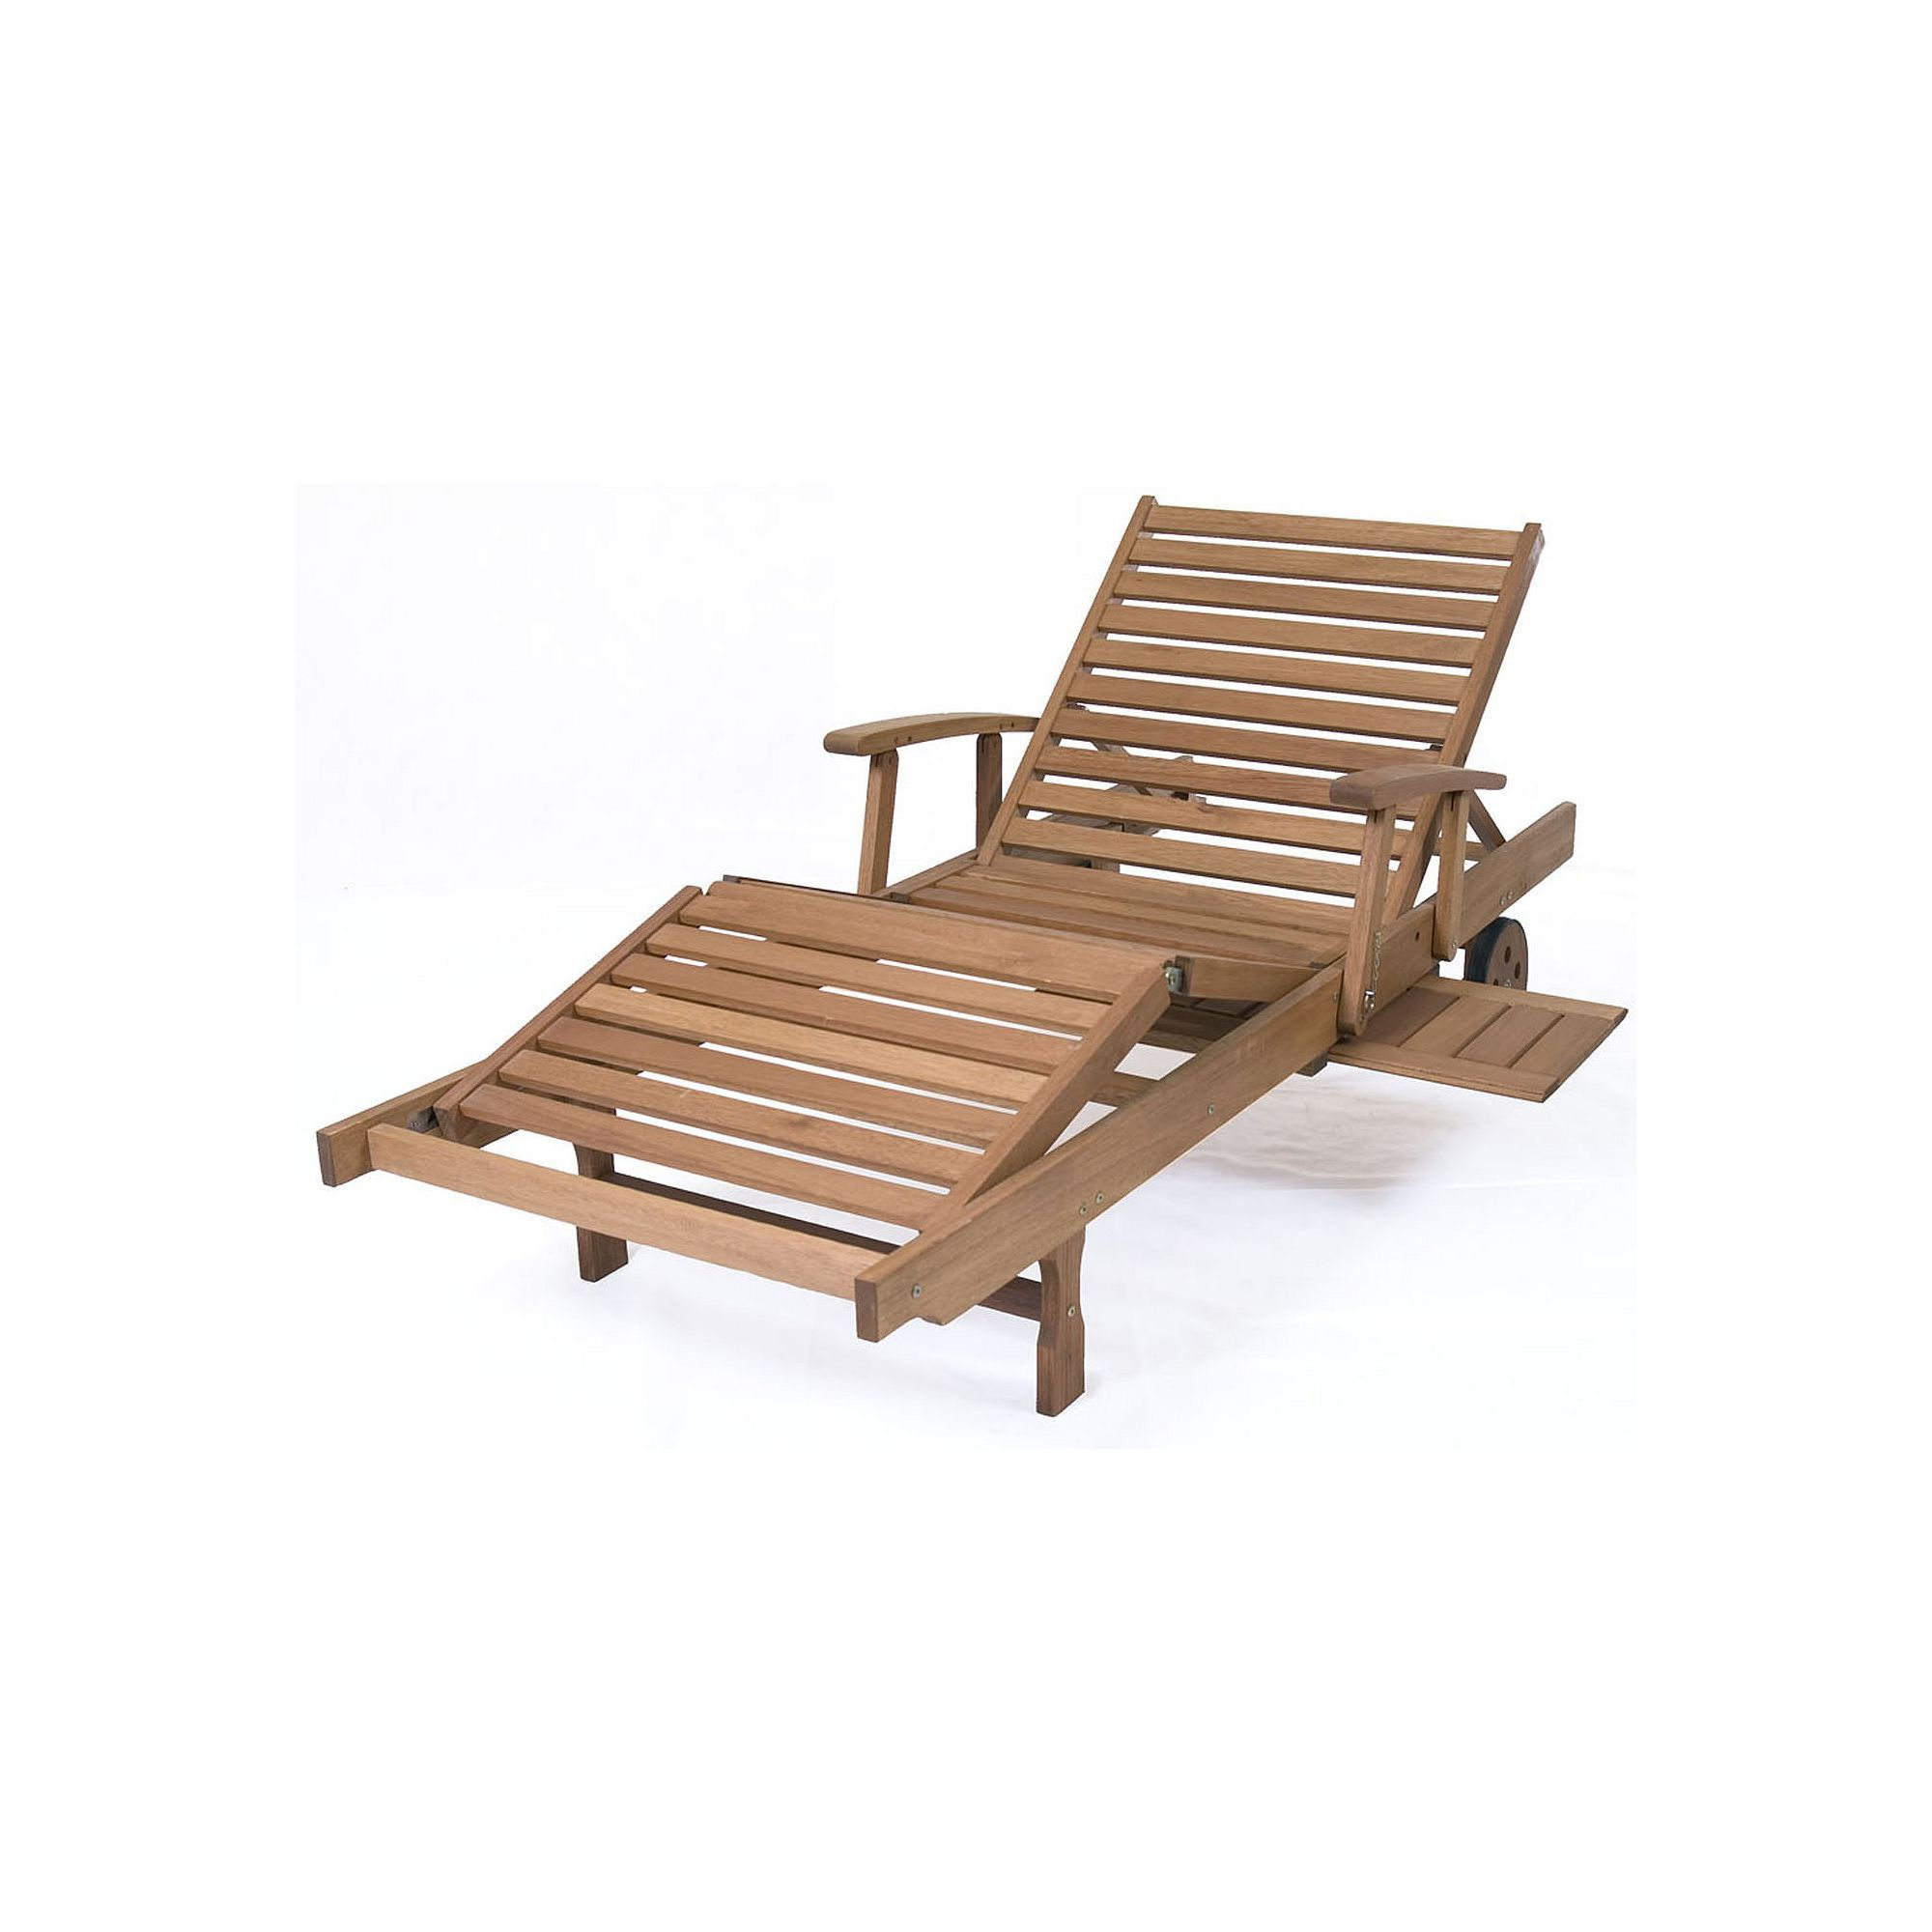 Amazonia Mariscal Chaise Wheeled Outdoor Lounge Chair Intended For Widely Used Cambridge Casual Sherwood Teak Chaise Lounges (View 21 of 25)